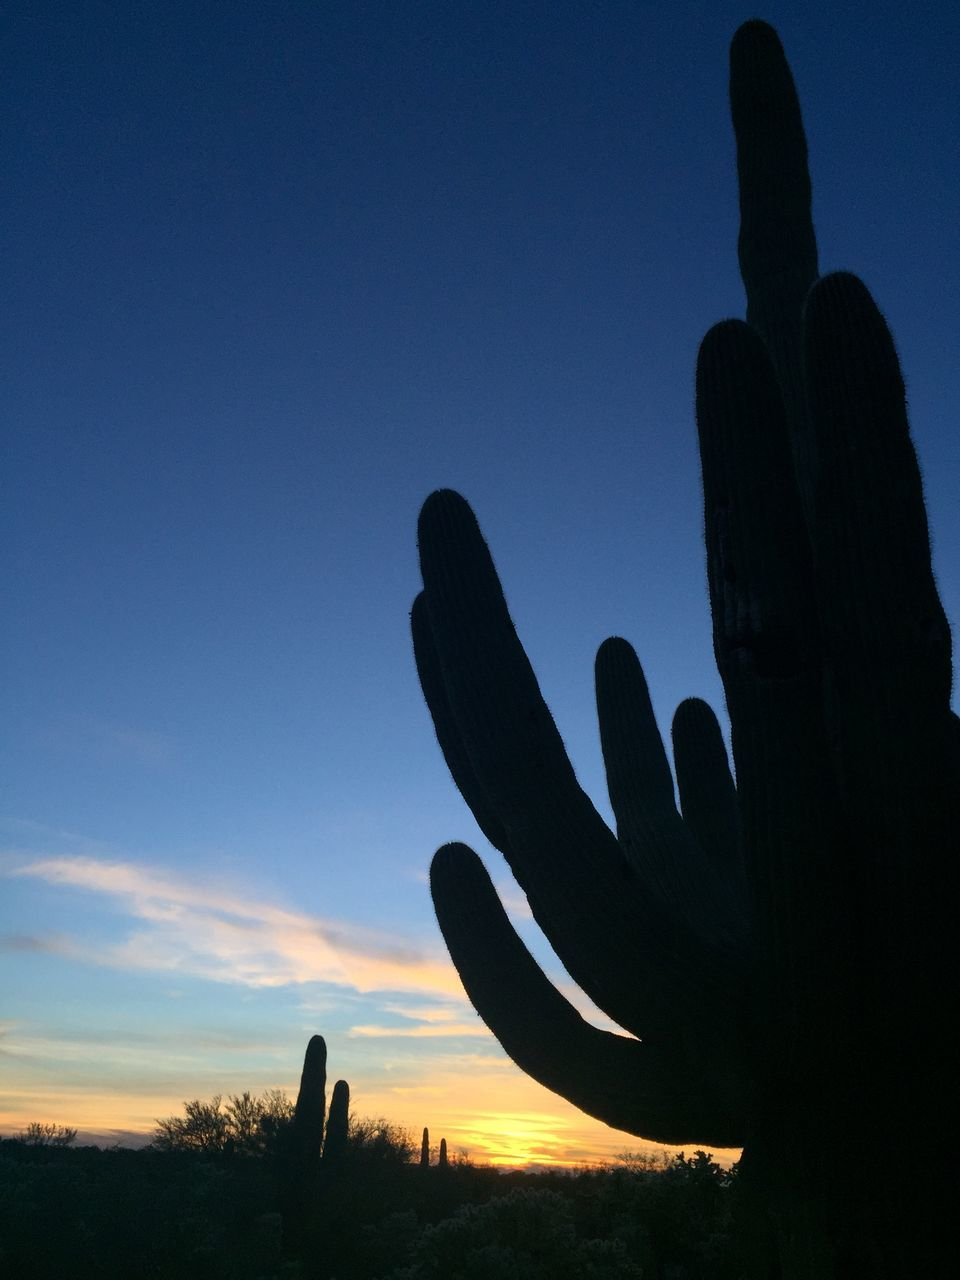 sunset, silhouette, nature, scenics, sky, cactus, beauty in nature, saguaro cactus, outdoors, growth, tranquility, human body part, one person, close-up, day, people